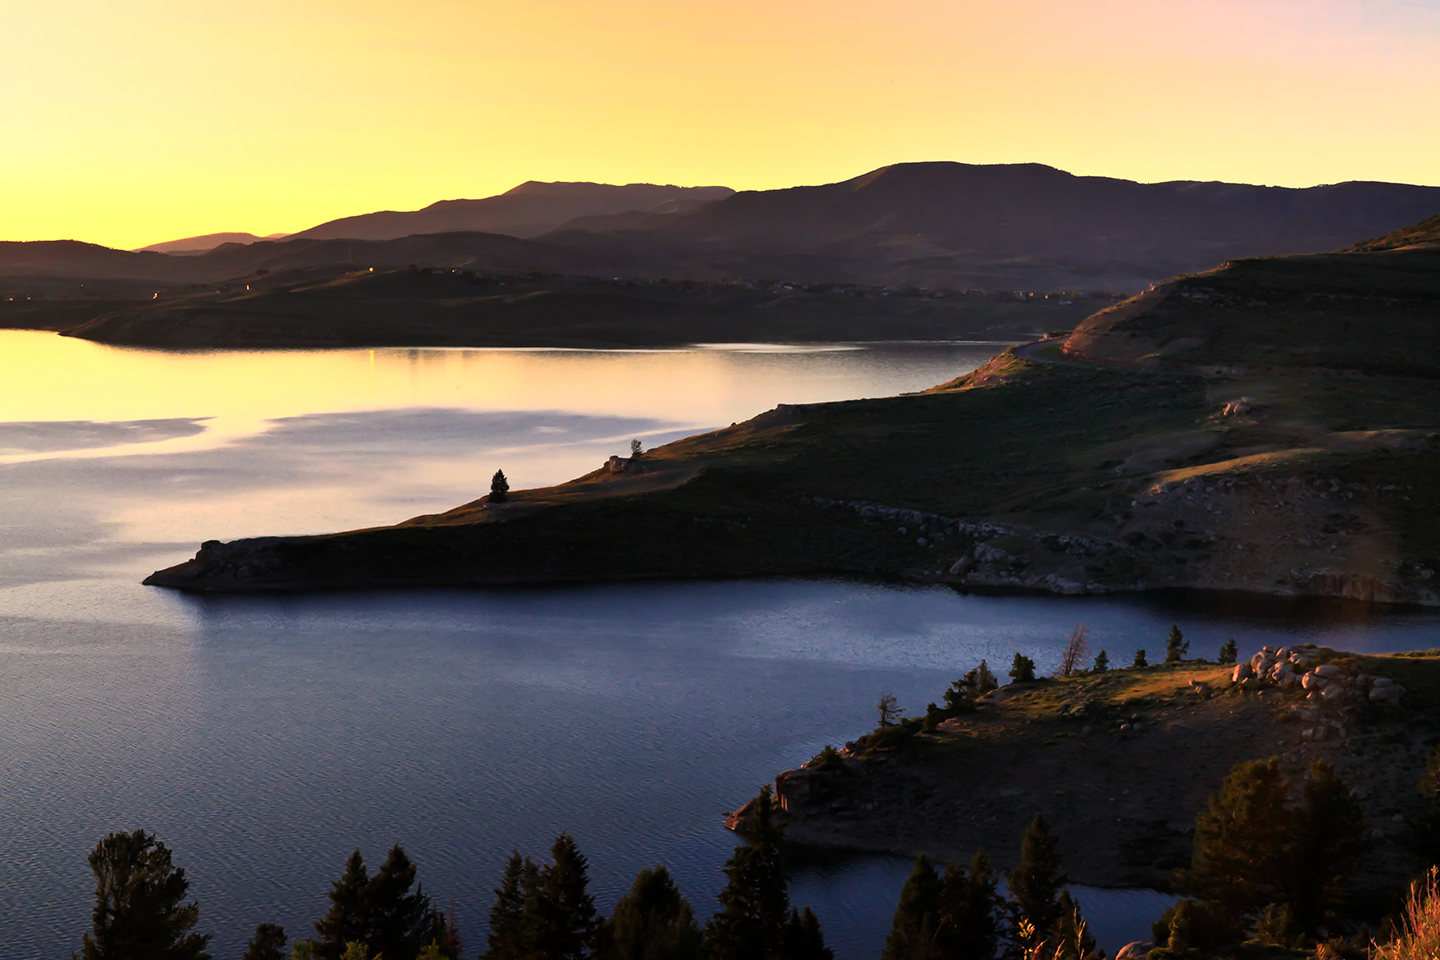 Sunrise at Strawberry Lake, one of the best places to go fishing near Salt Lake City